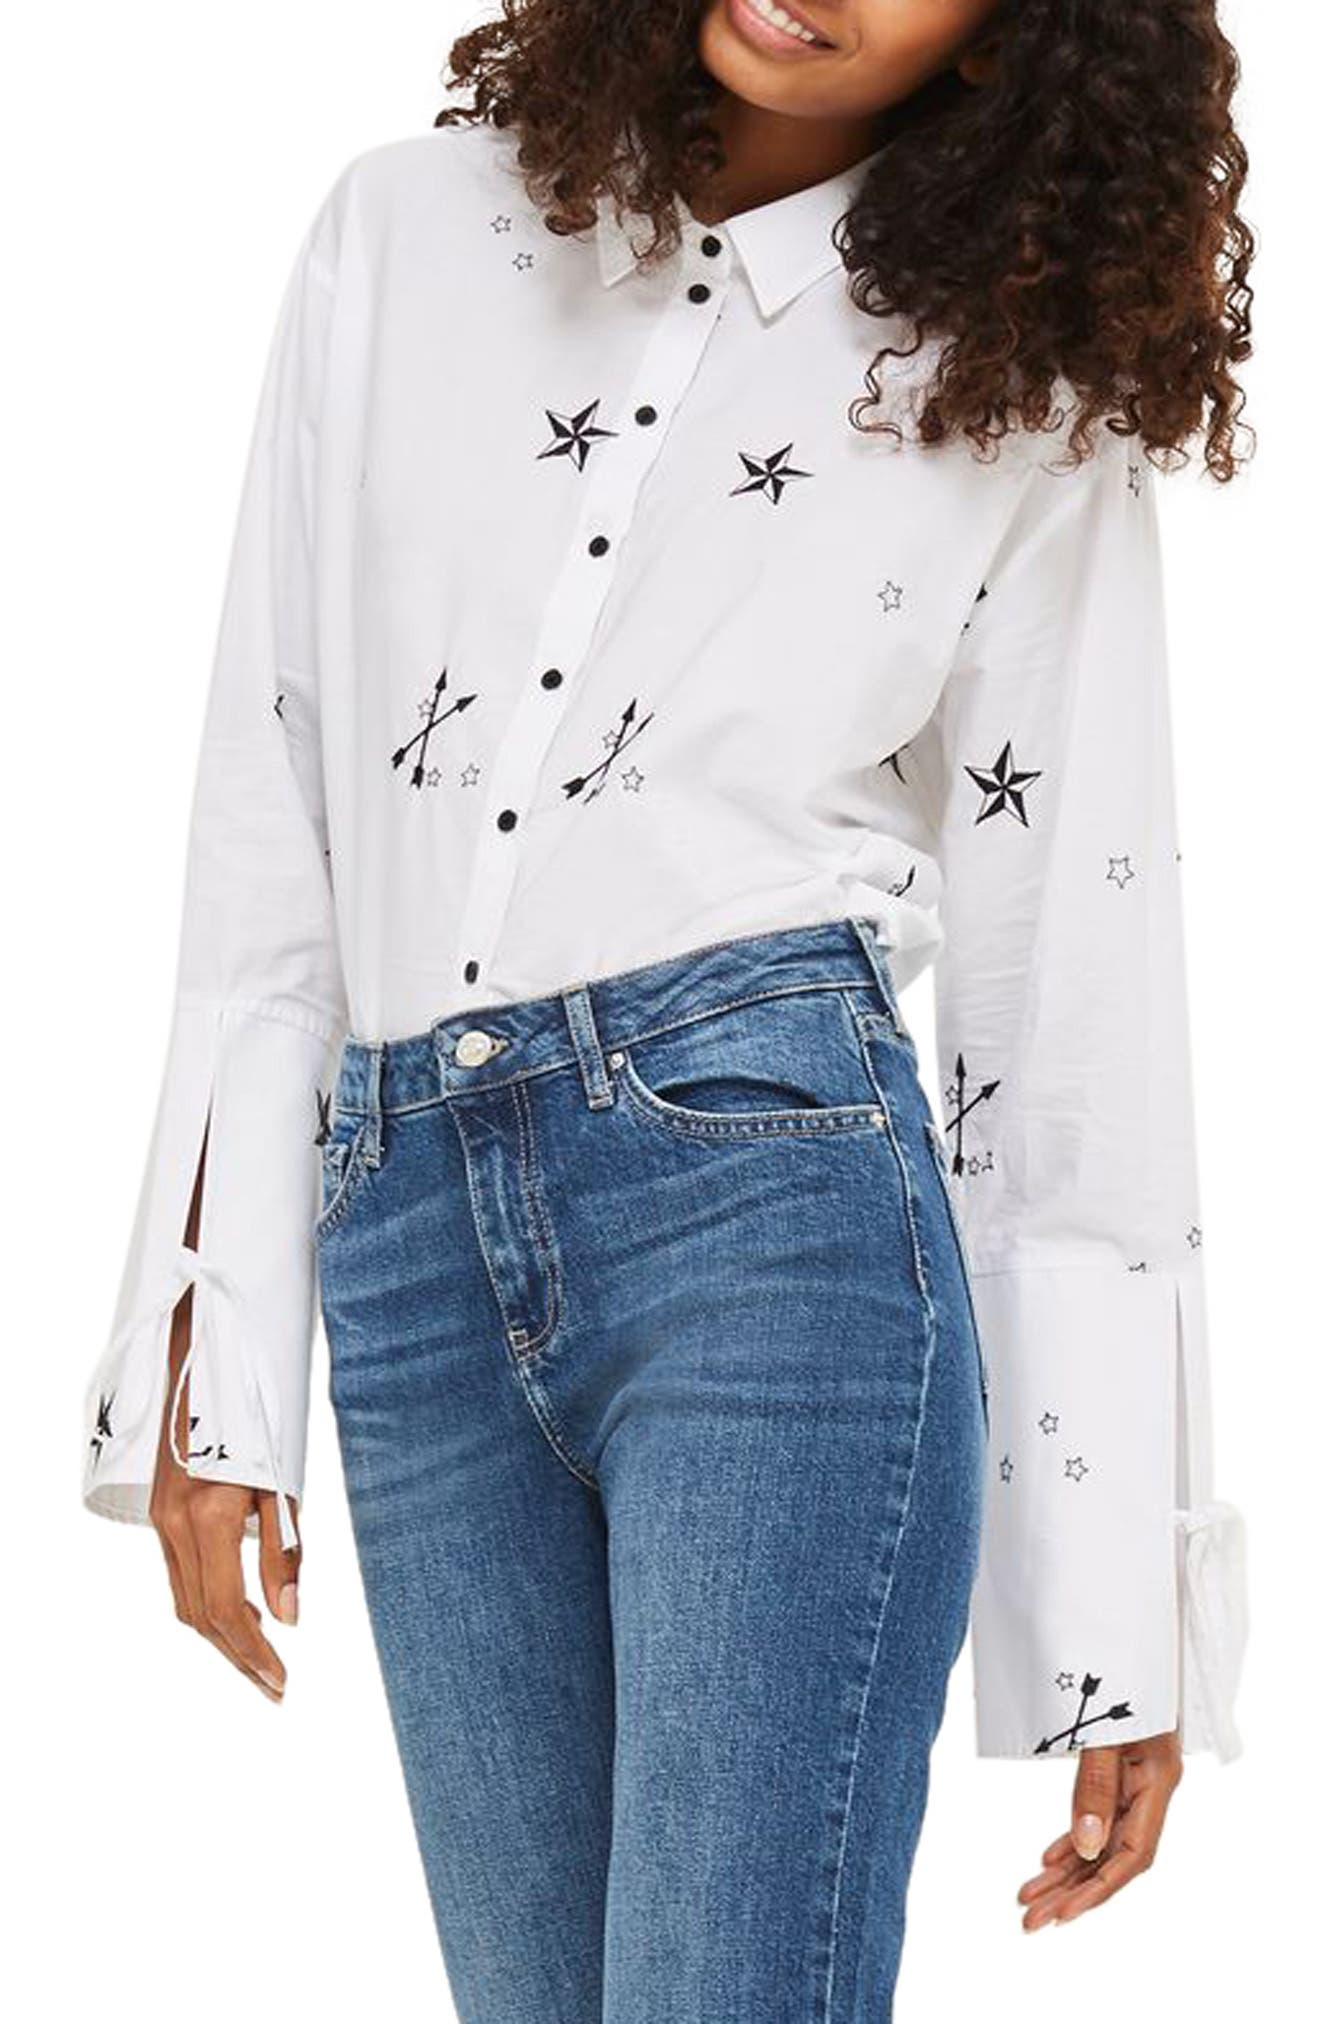 Star Embroidered Shirt,                             Main thumbnail 1, color,                             White Multi